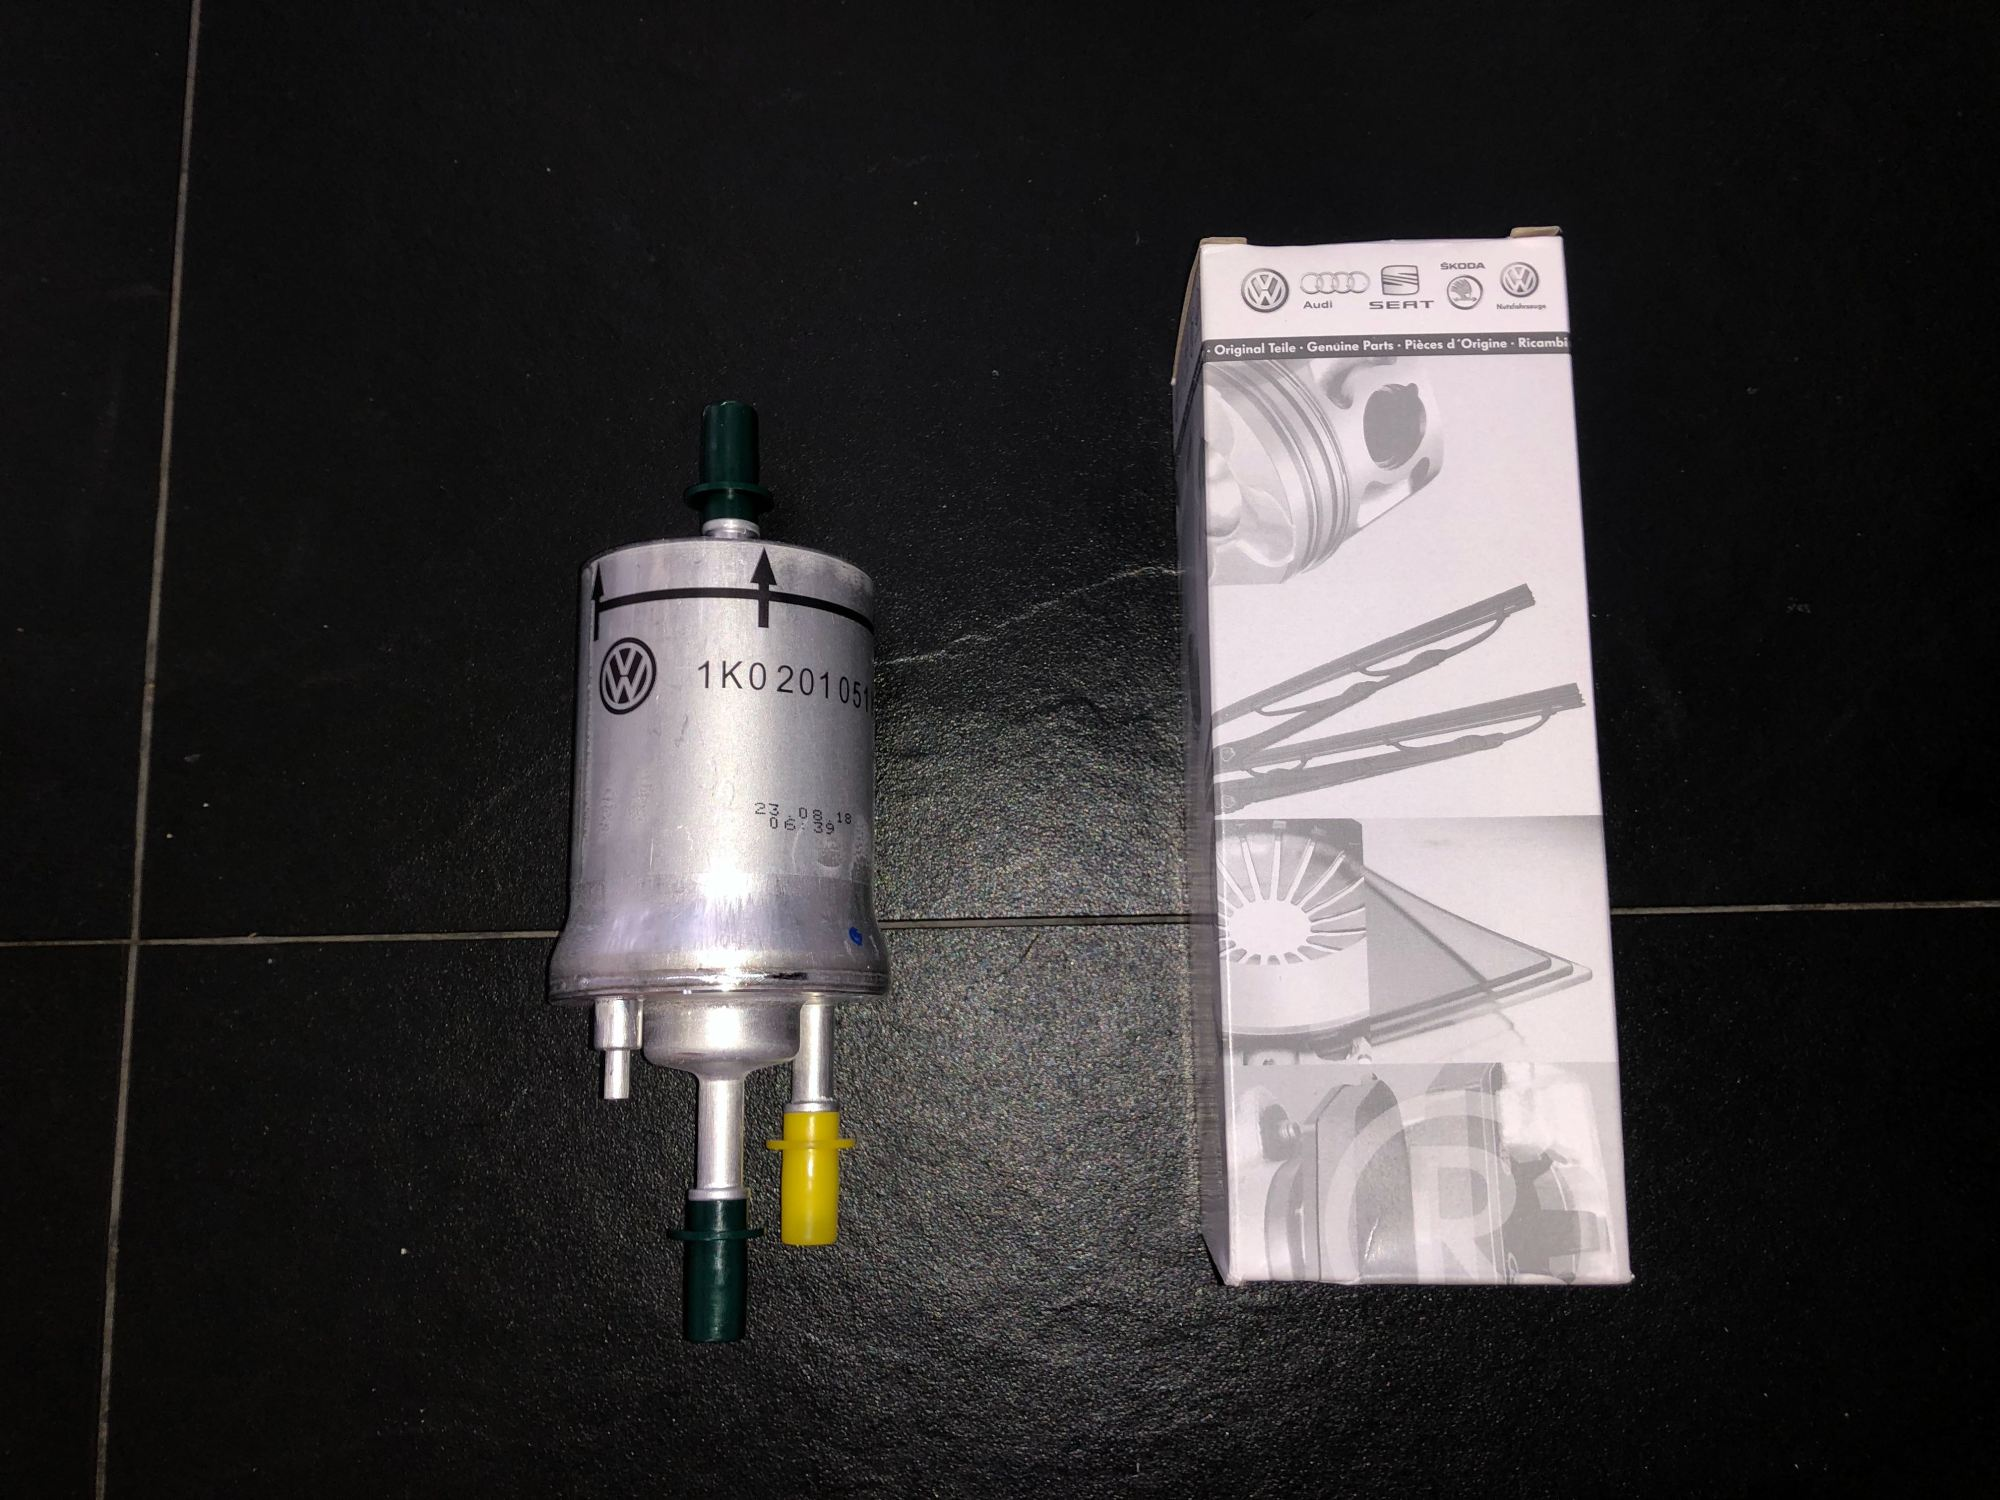 hight resolution of 1k0201051k fuel filter vw golf jetta 1 4 2 0 tsi scirocco audi tt car accessories car workshops services on carousell